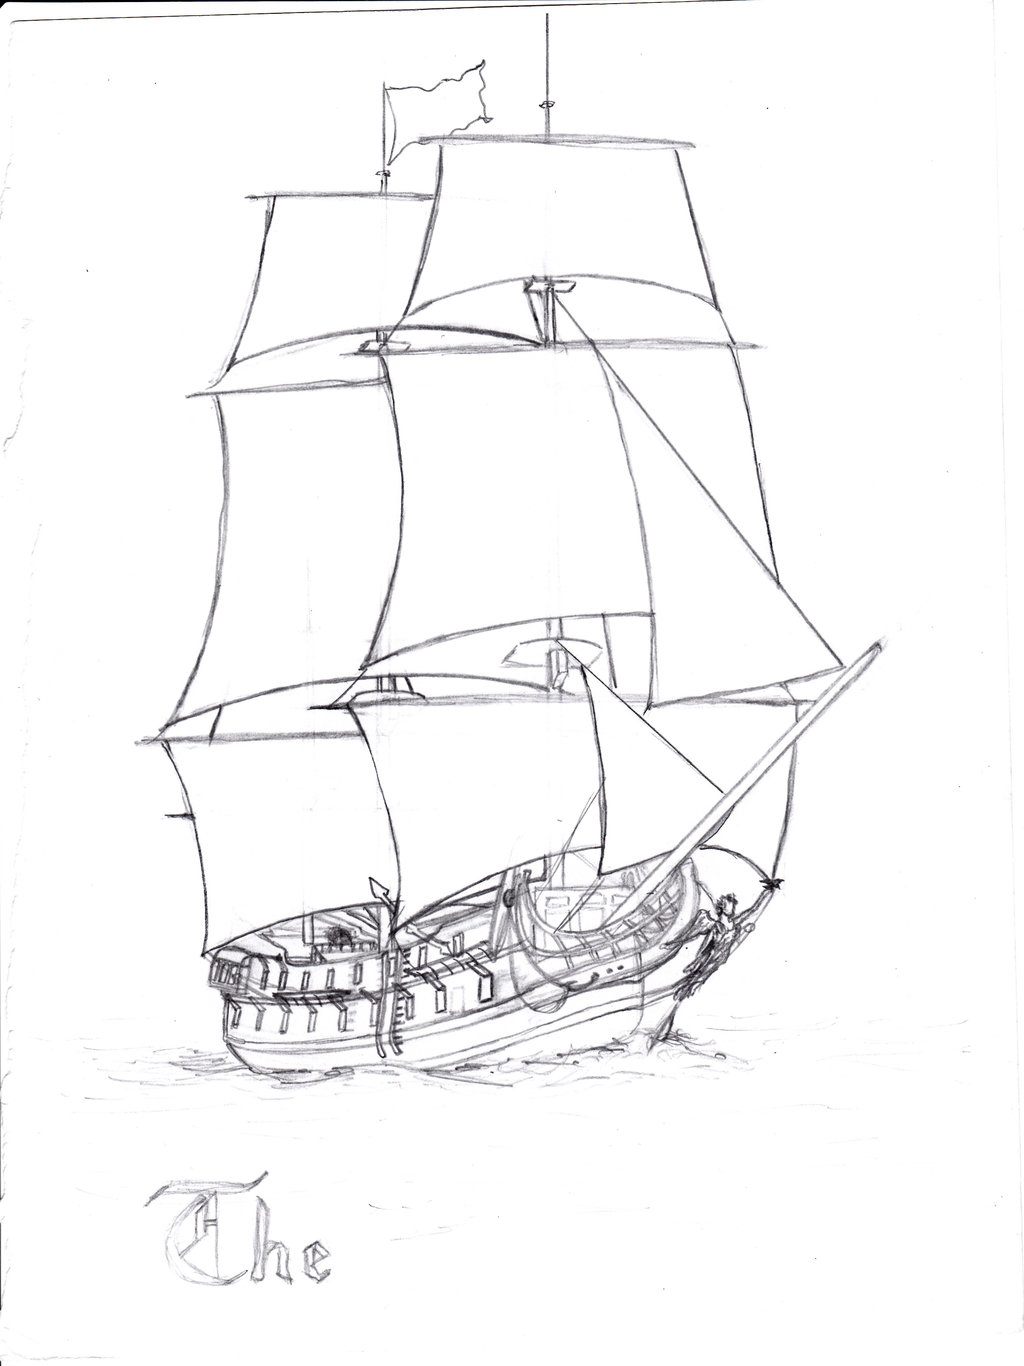 pirate ship sail template - simple pirate ship drawing at free for